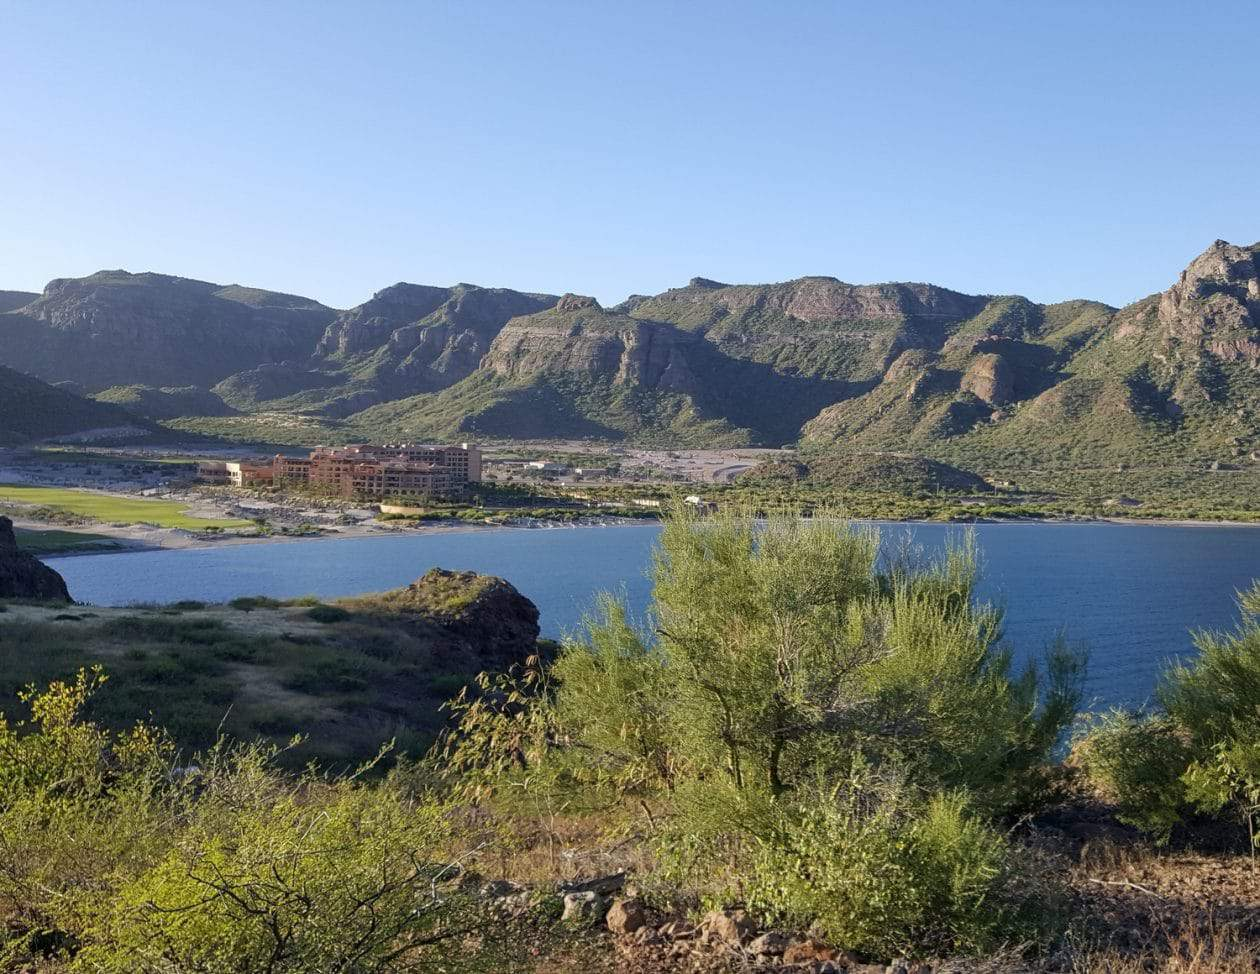 #TCFTravel – Escape to Villa del Palmar at the Islands of Loreto